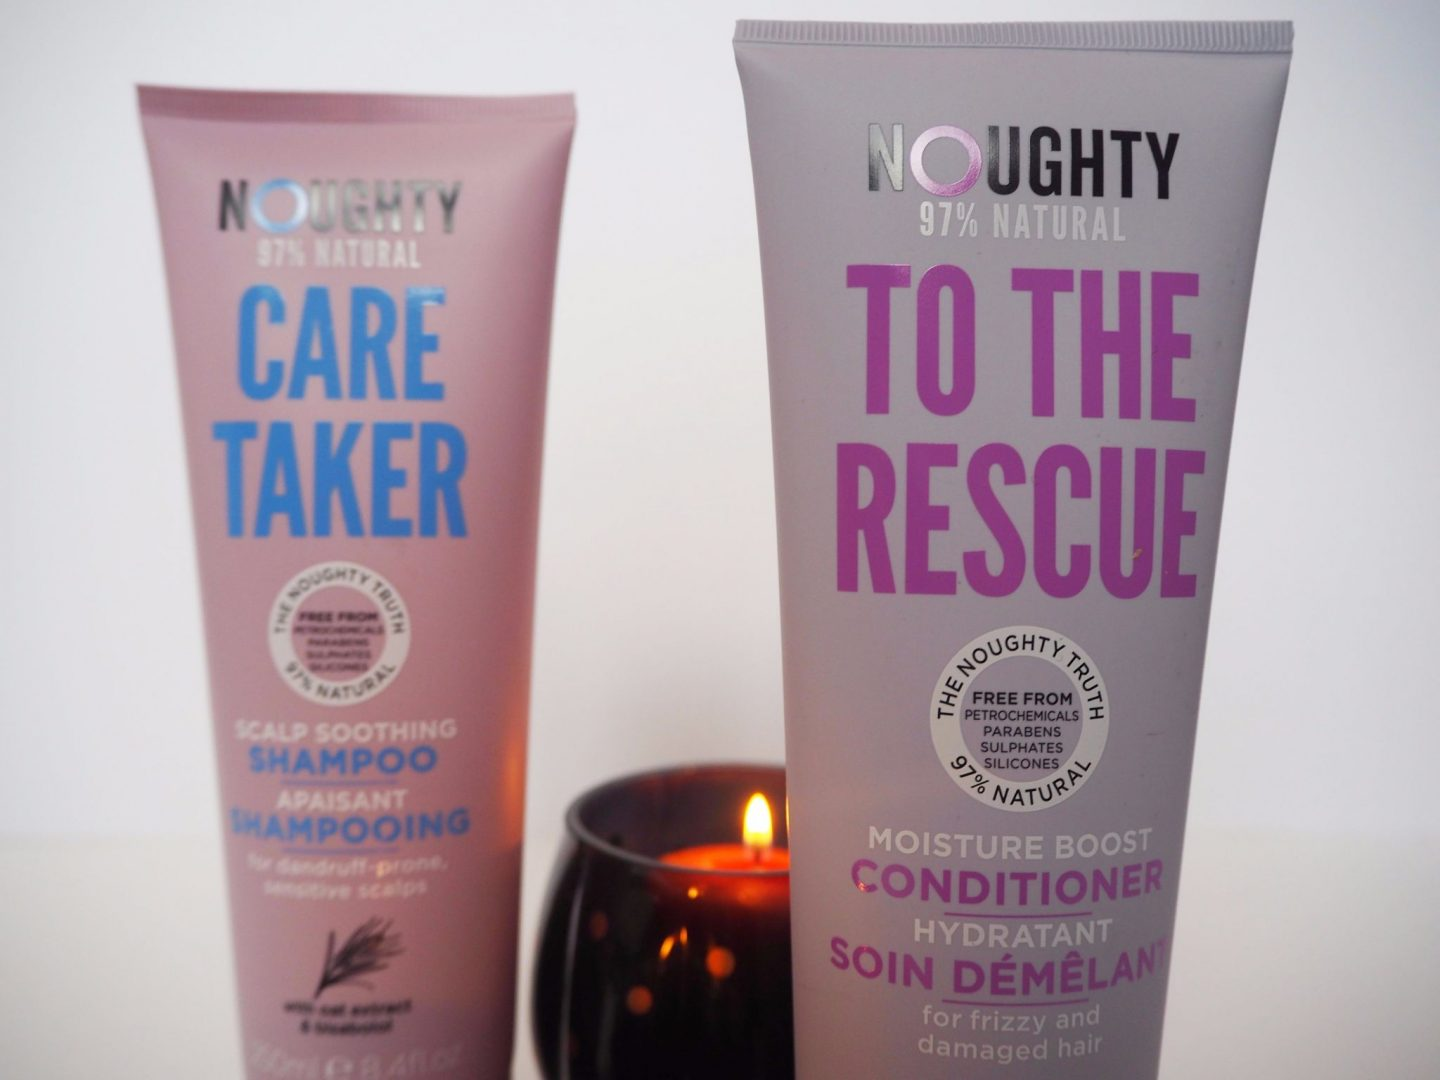 Noughty Shampoo & conditioner